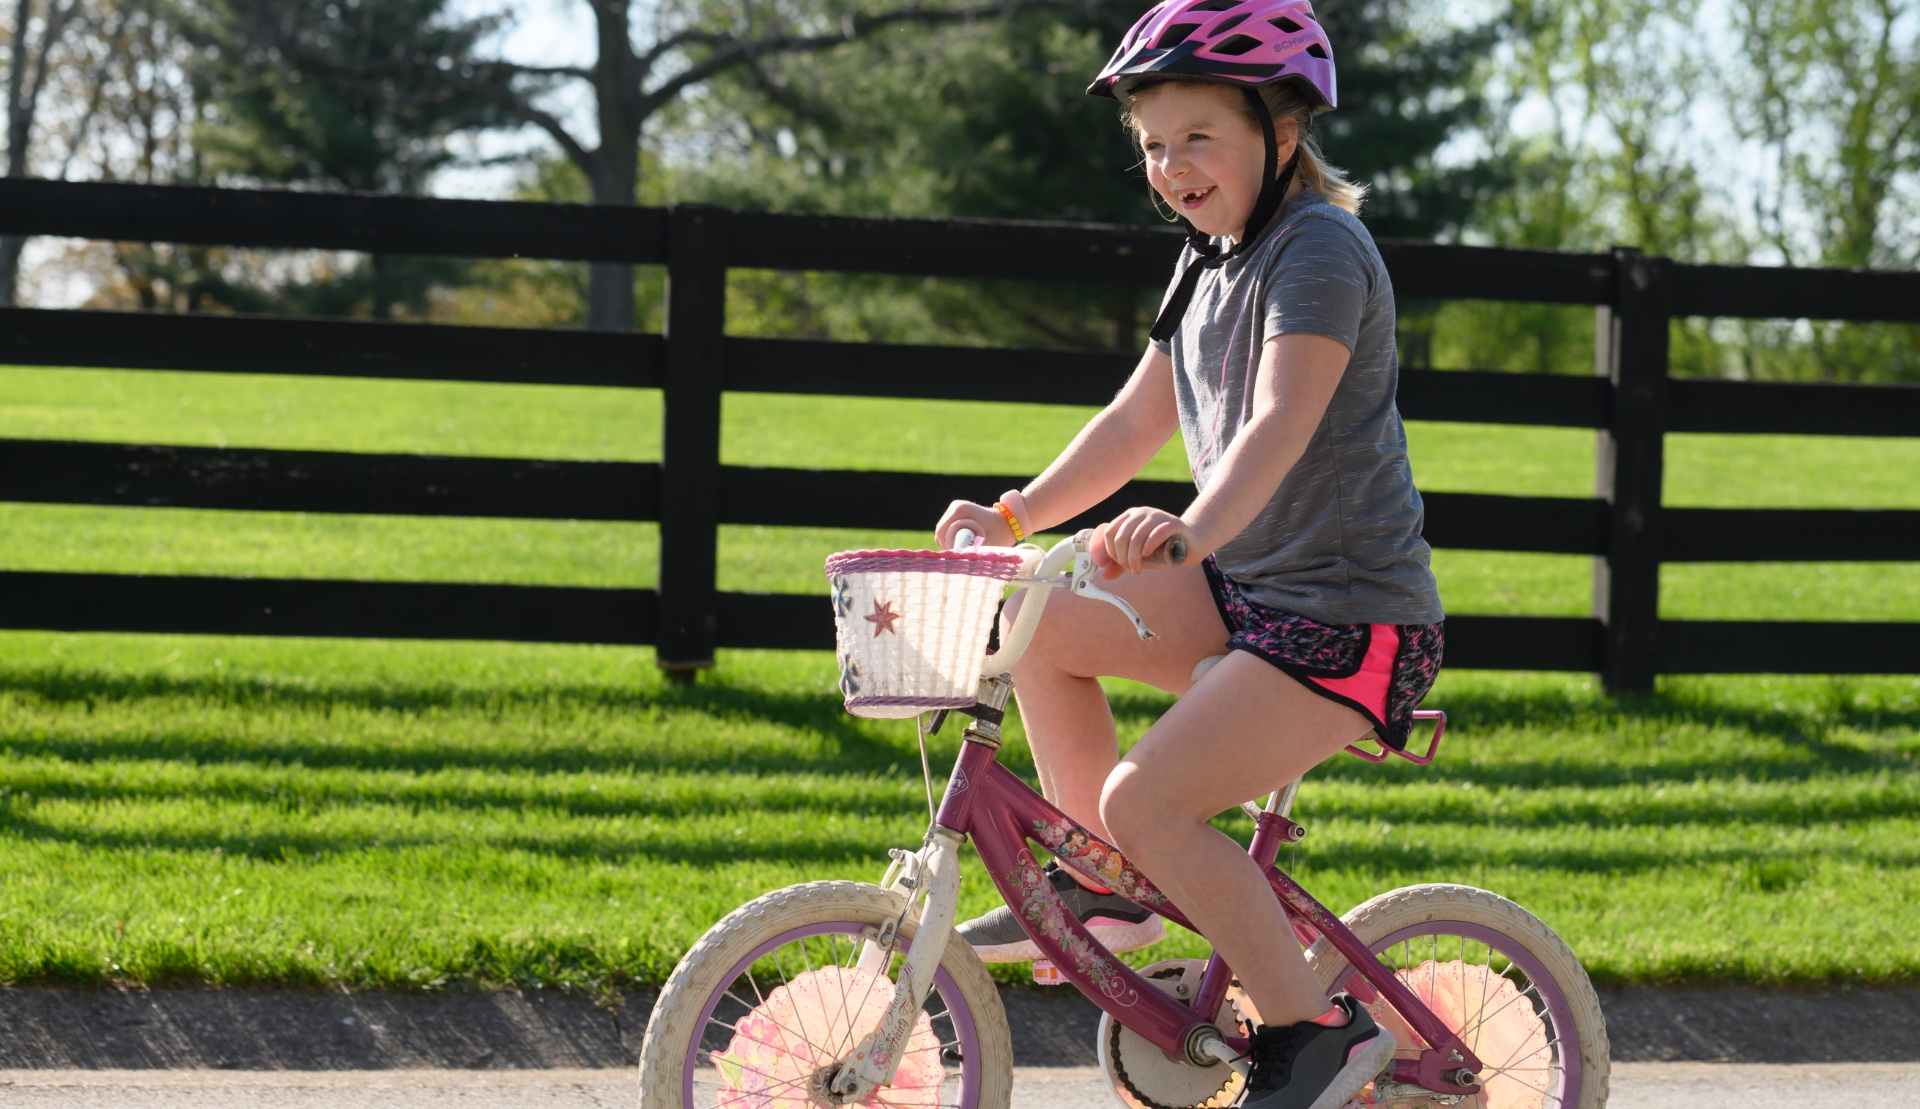 With a pink helmet on her head, Sarah Beth rides her white and pink bicycle outside.